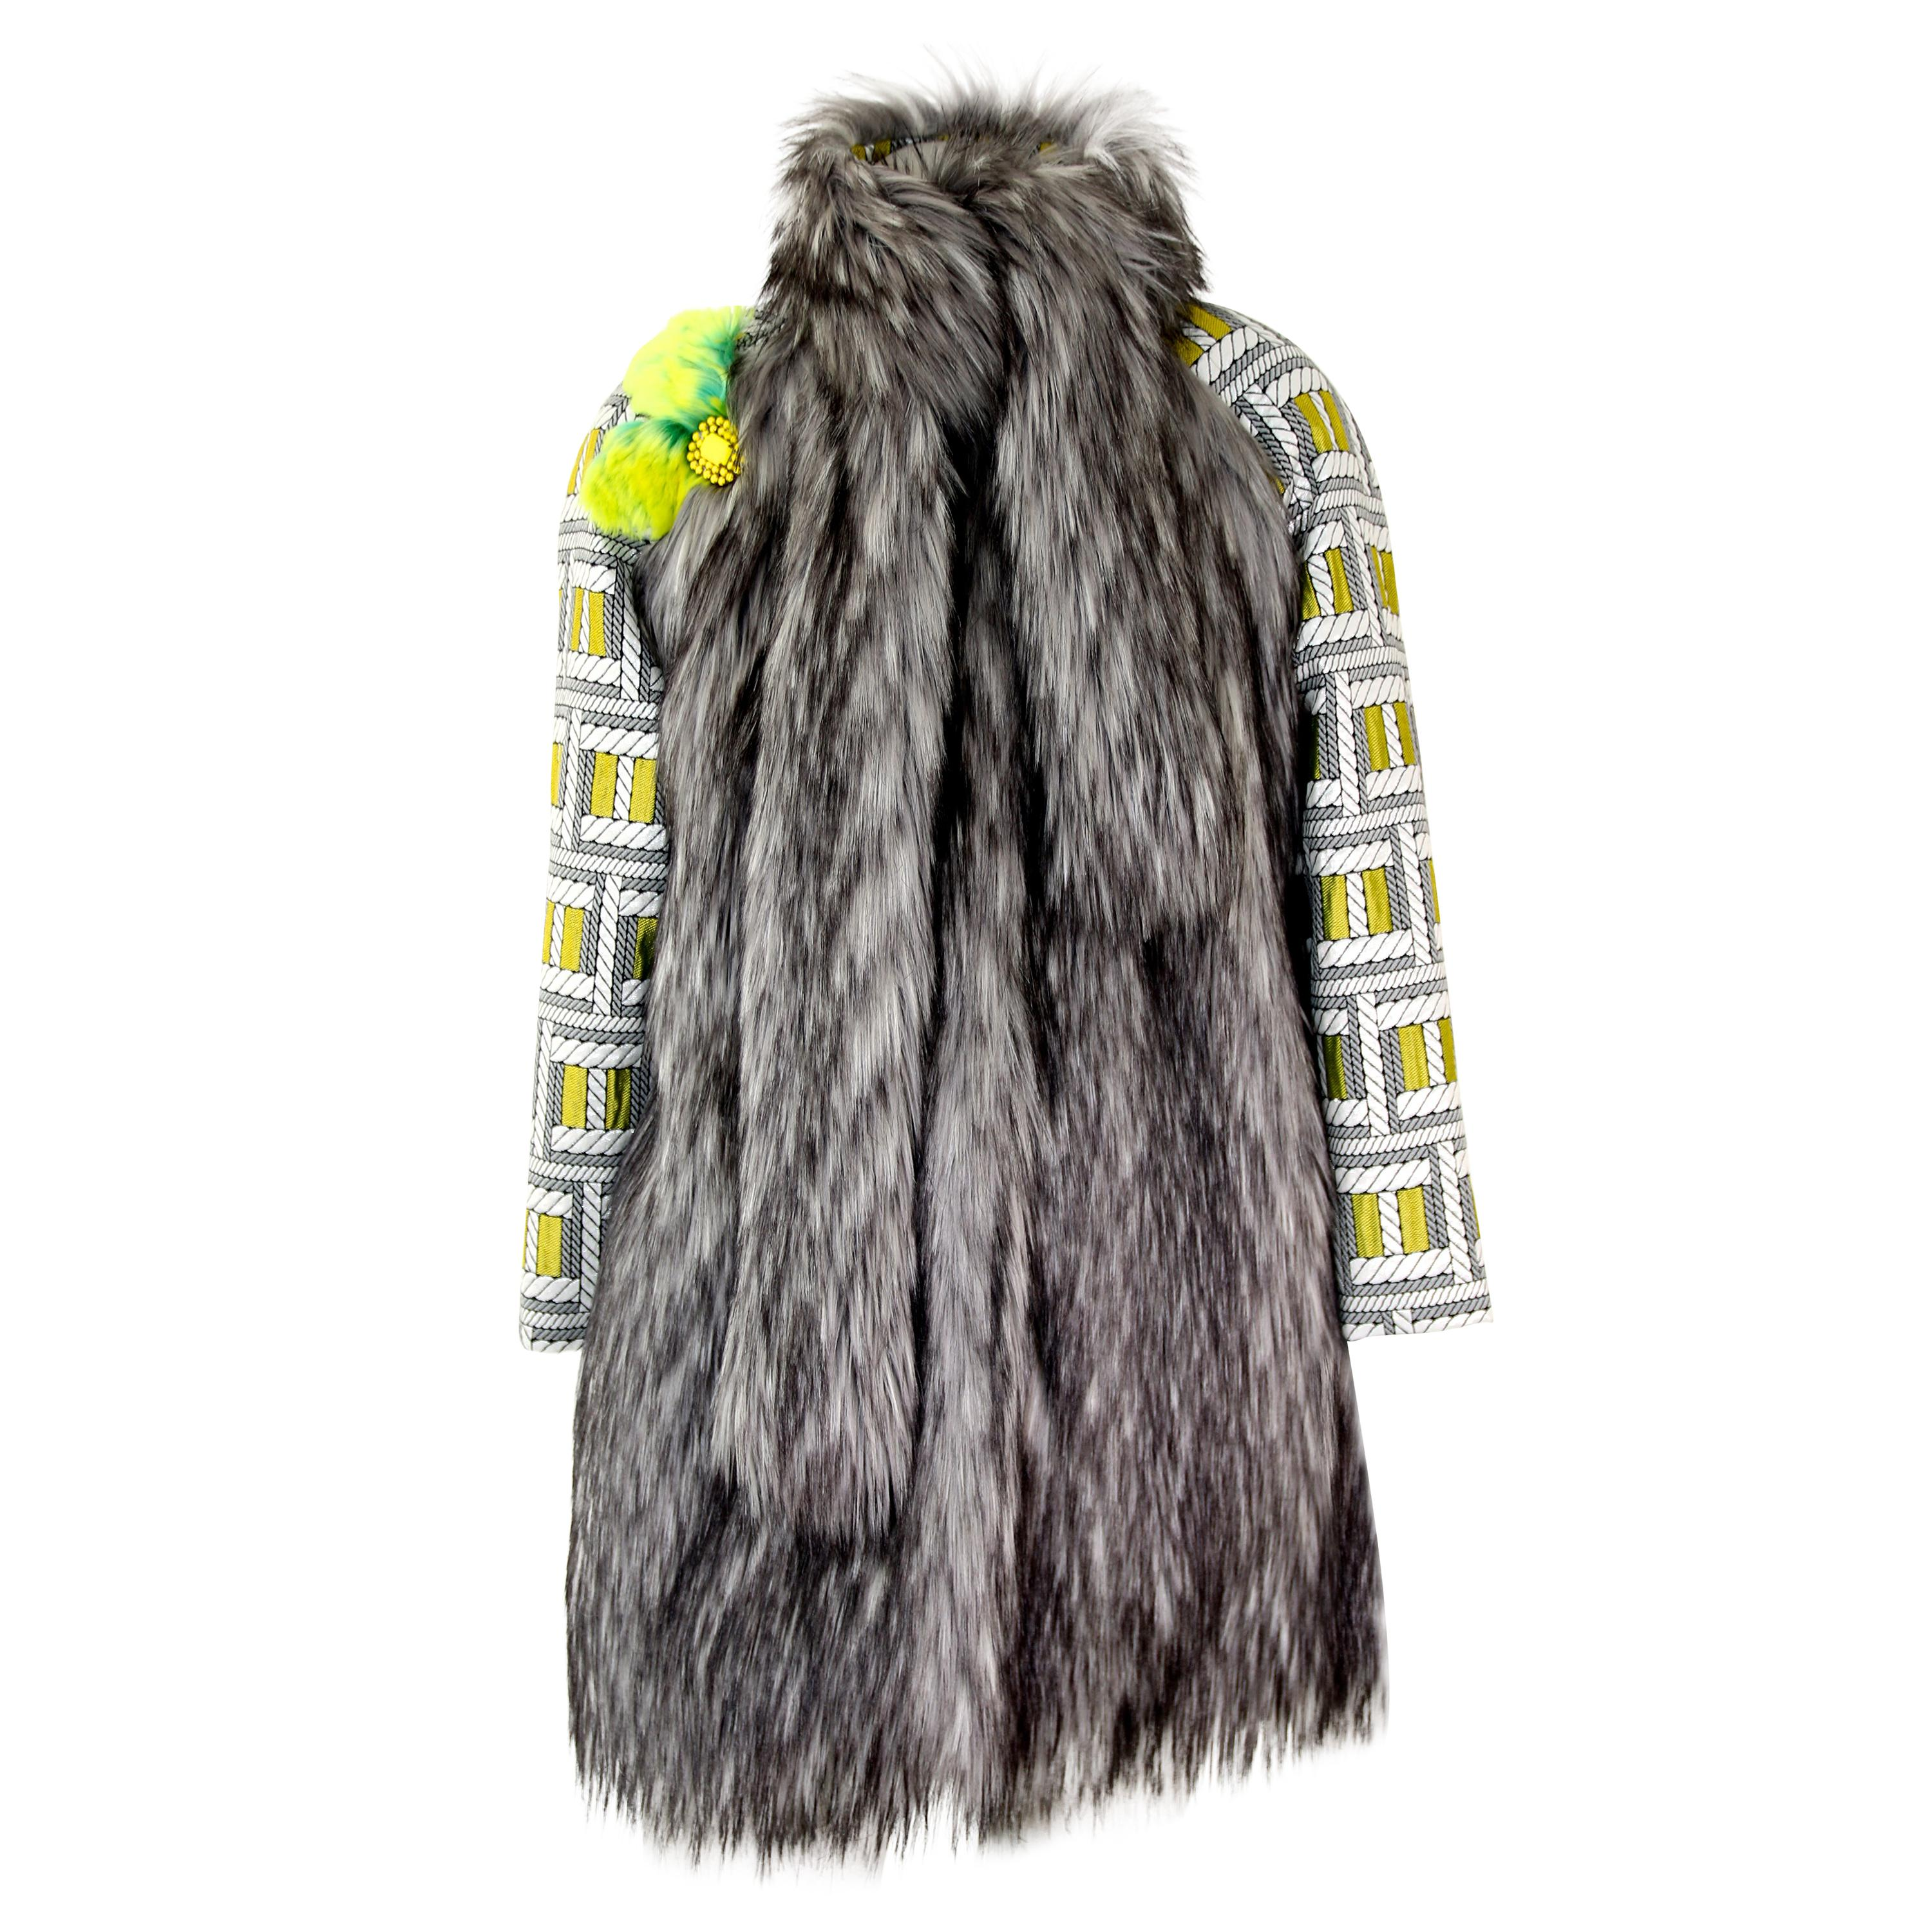 Pelush Silver Gray Faux Fur Fox Jacket With Brocade Sleeves - XS/S